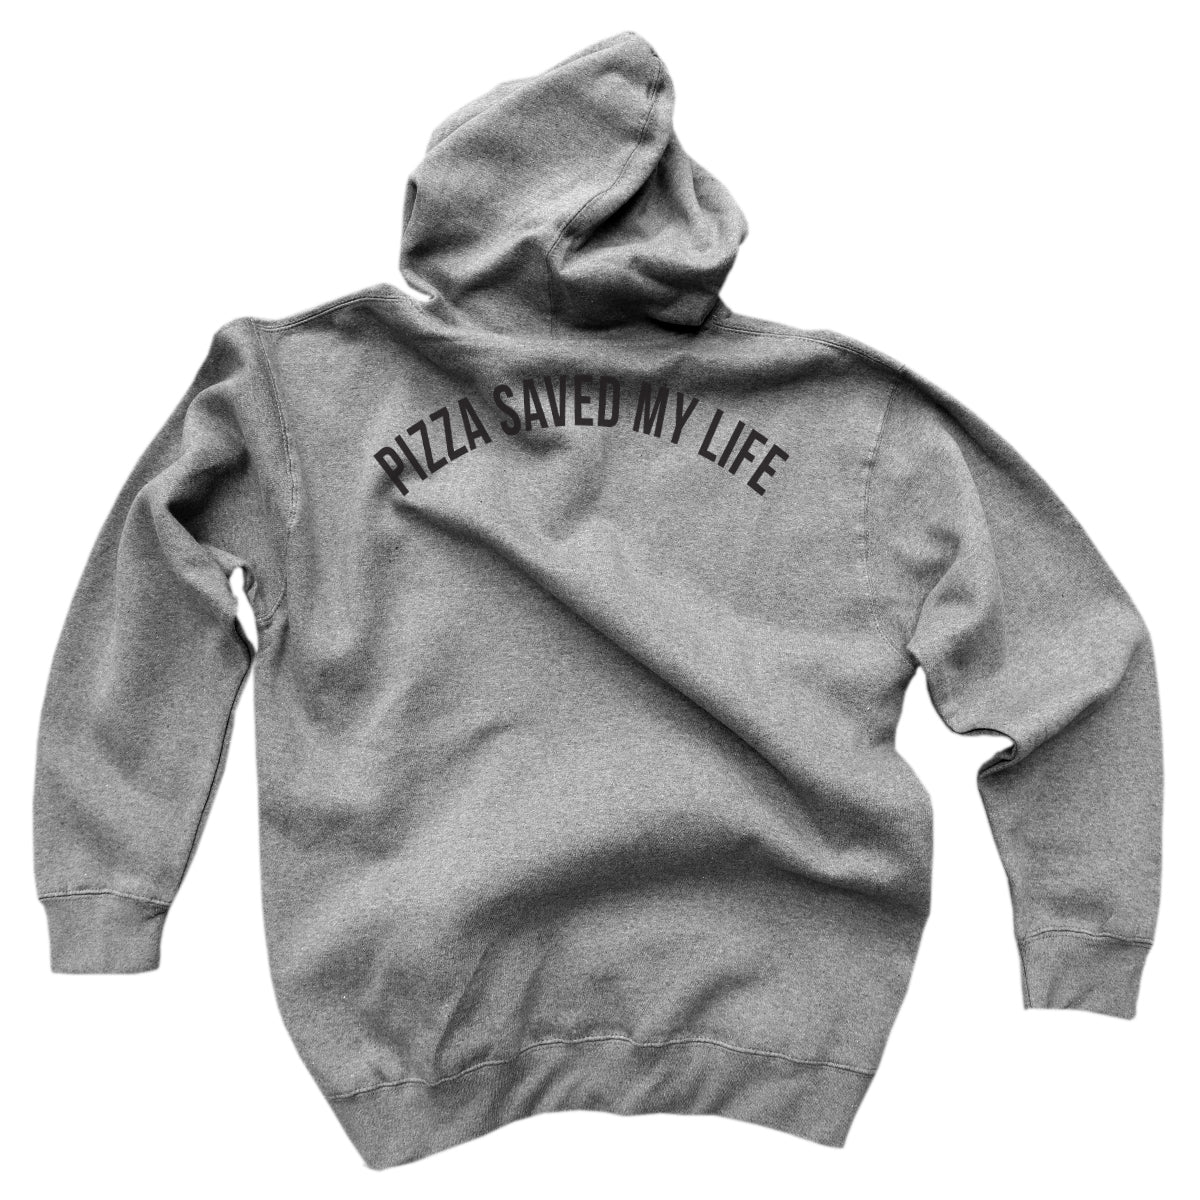 Pizza Saved My Life<br> [Hoody]<br> PRE-ORDER! (ships 4/19-4/26)